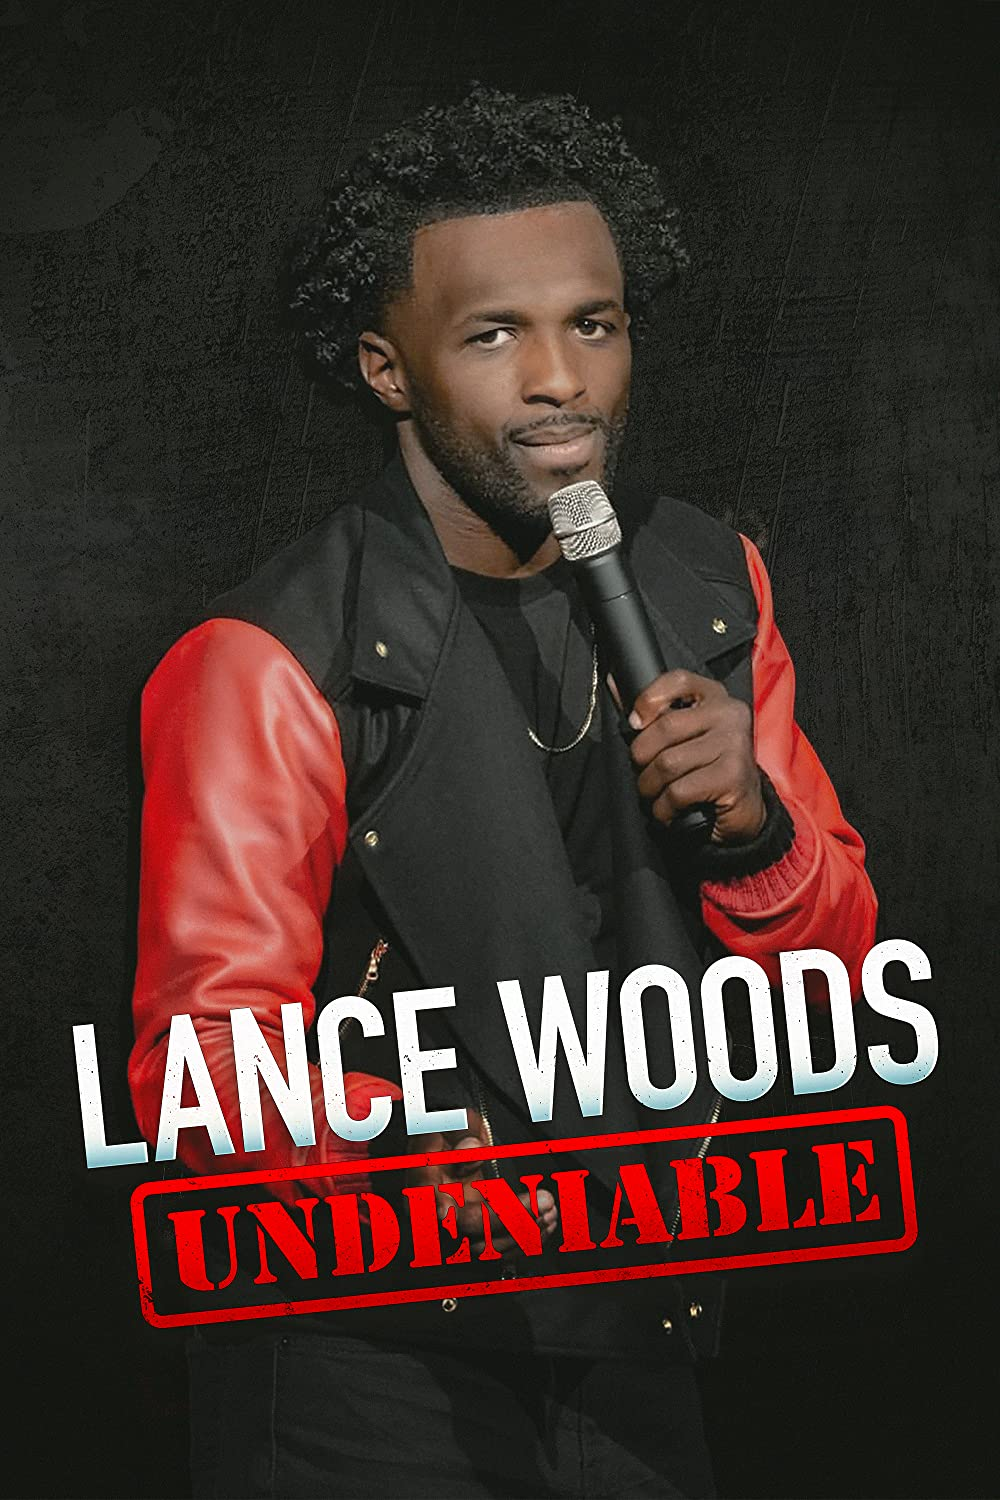 Lance Woods: Undeniable  Watch Movies Online